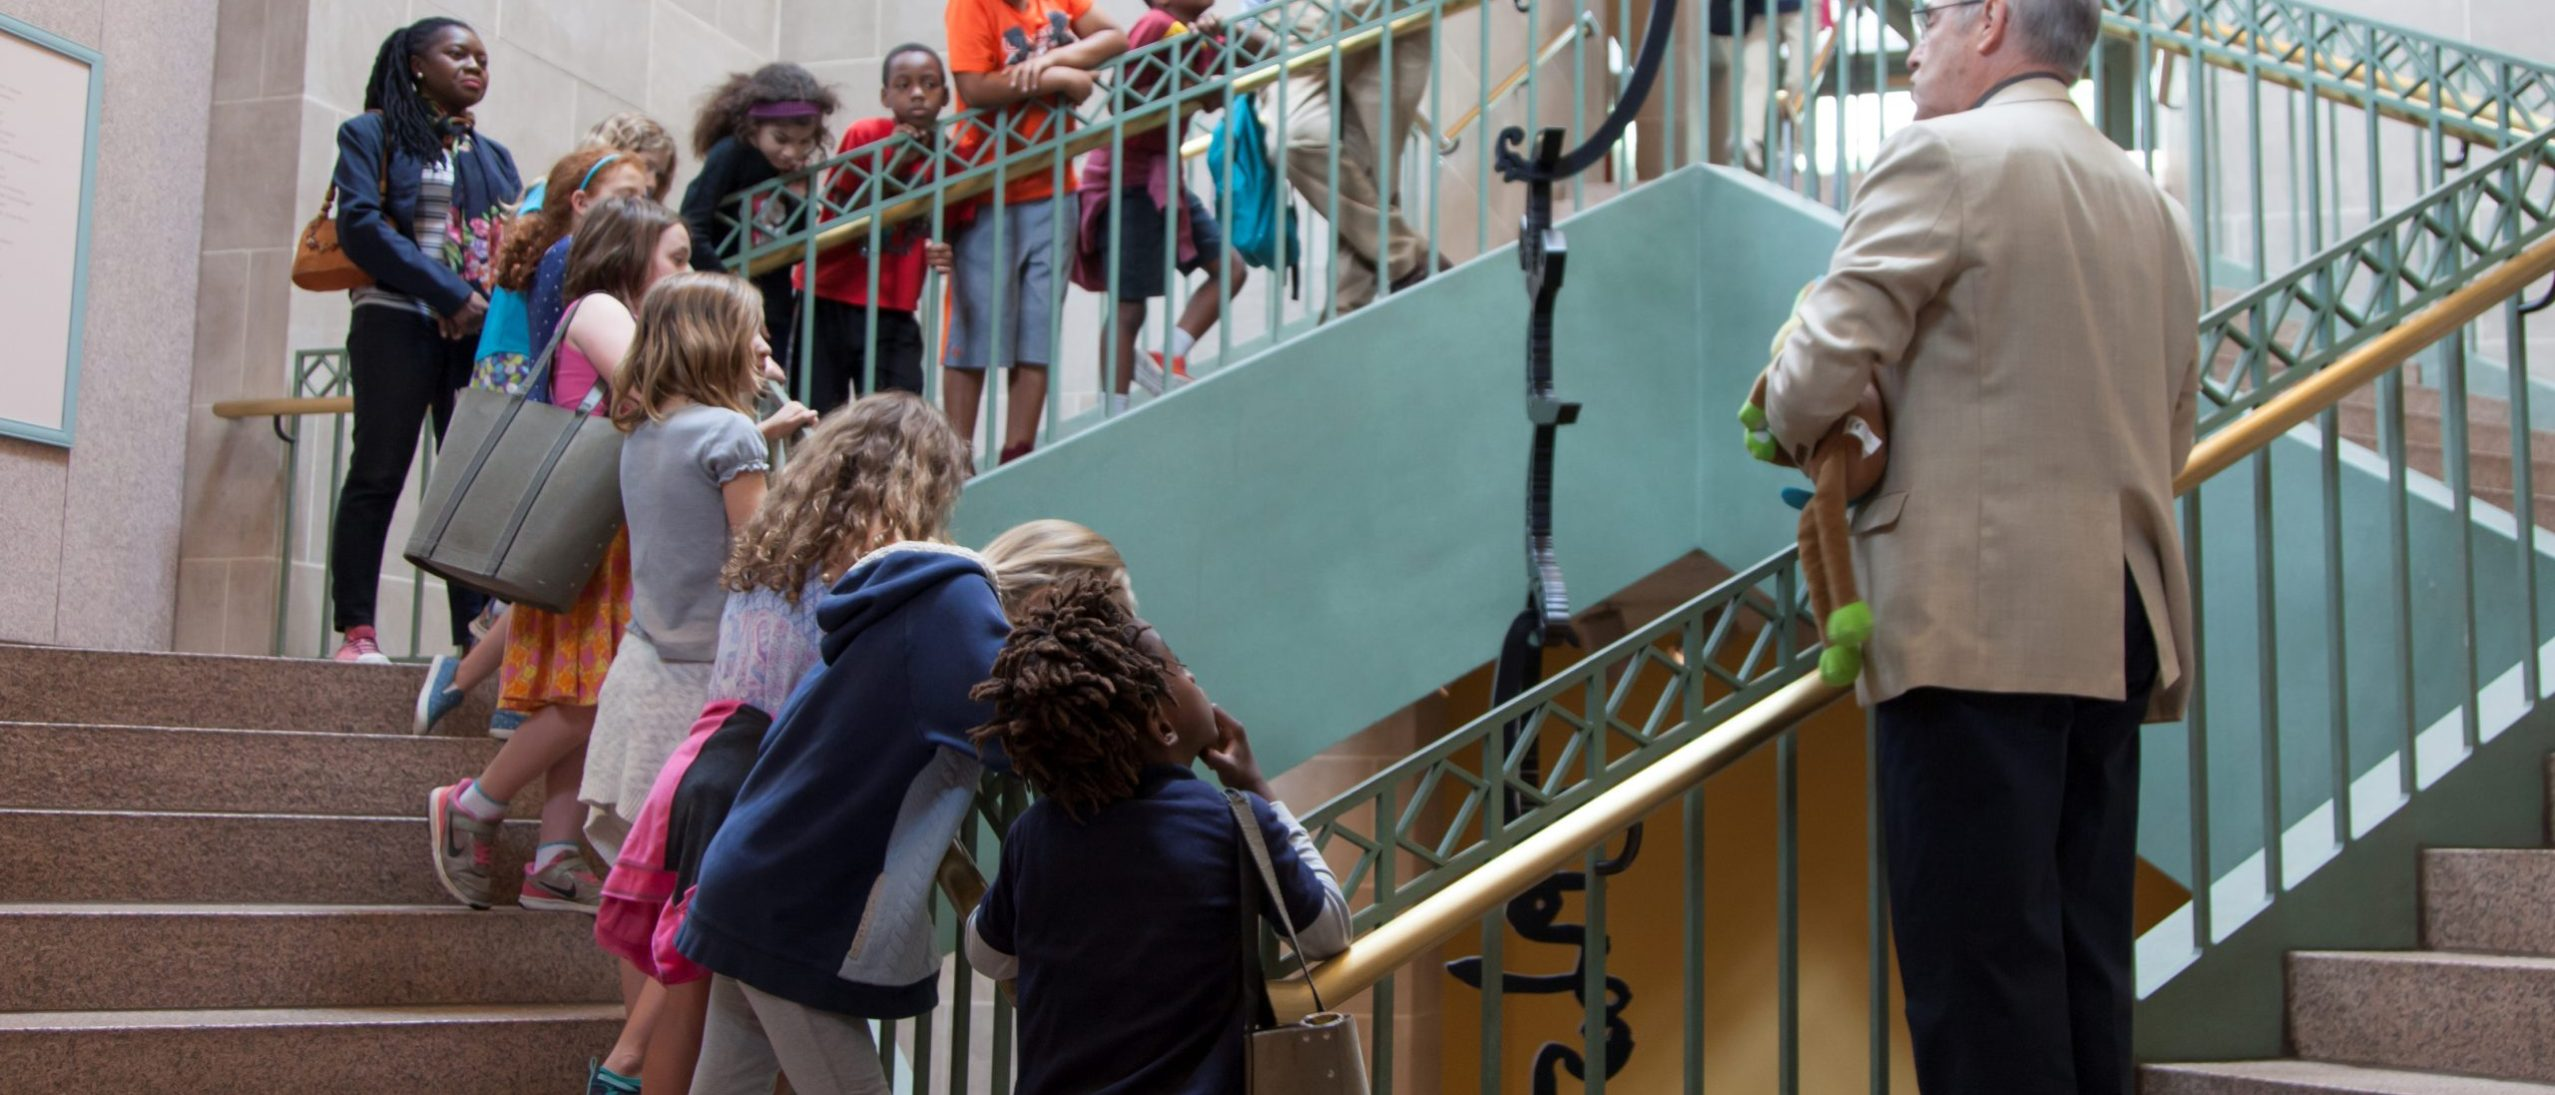 children on stairs in a museum observing artwork